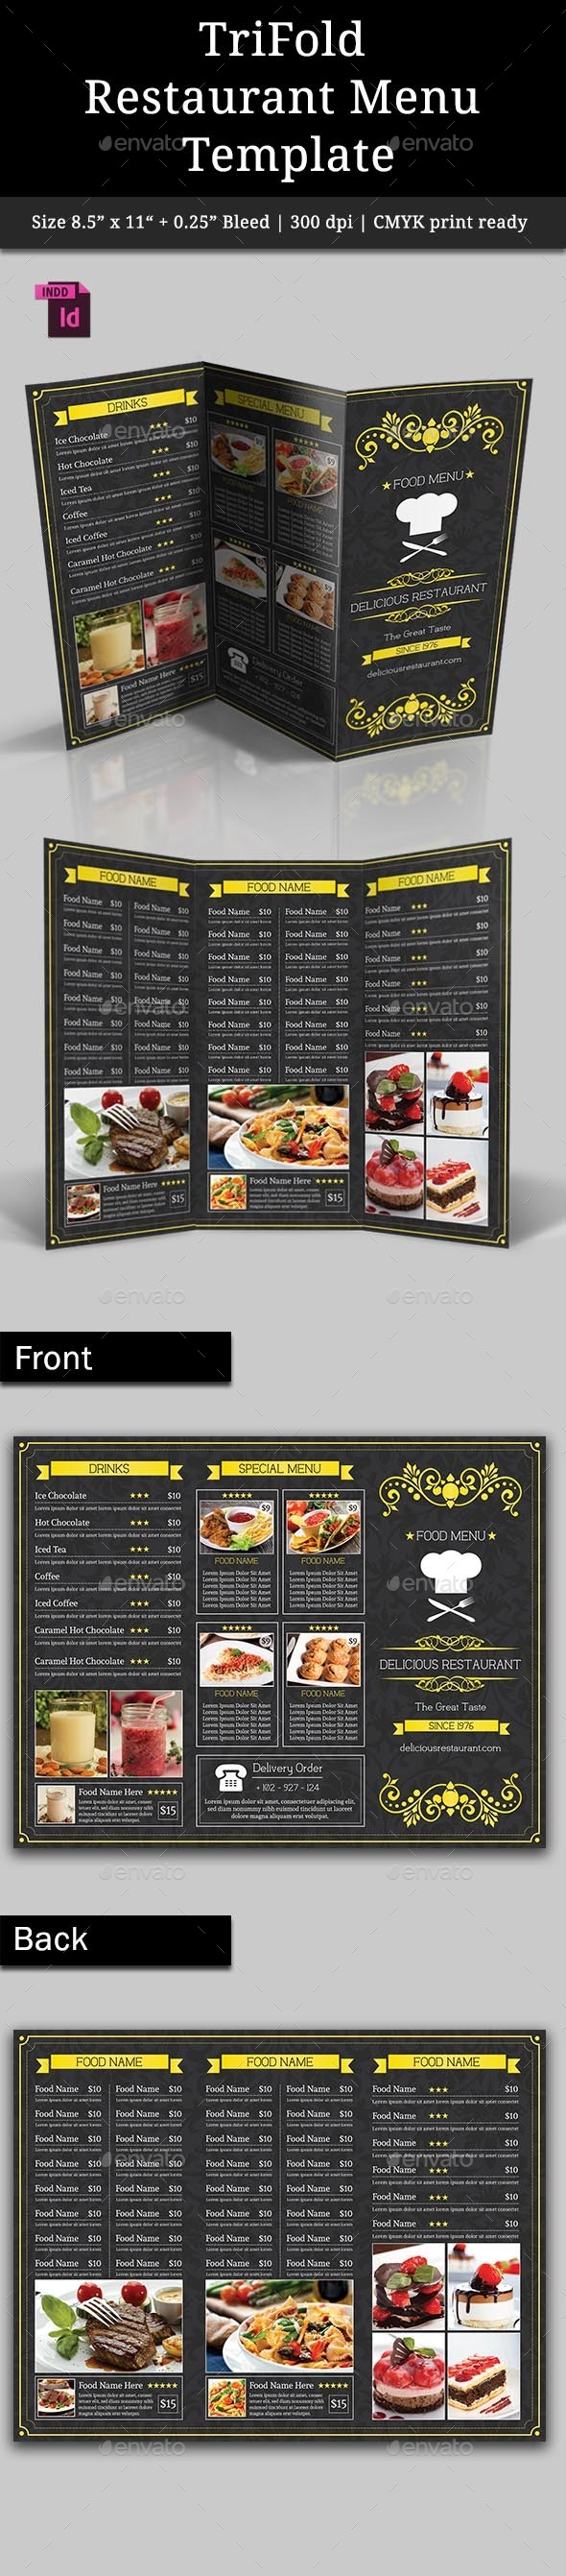 GraphicRiver TriFold Restaurant Menu Template Vol 3 9318763